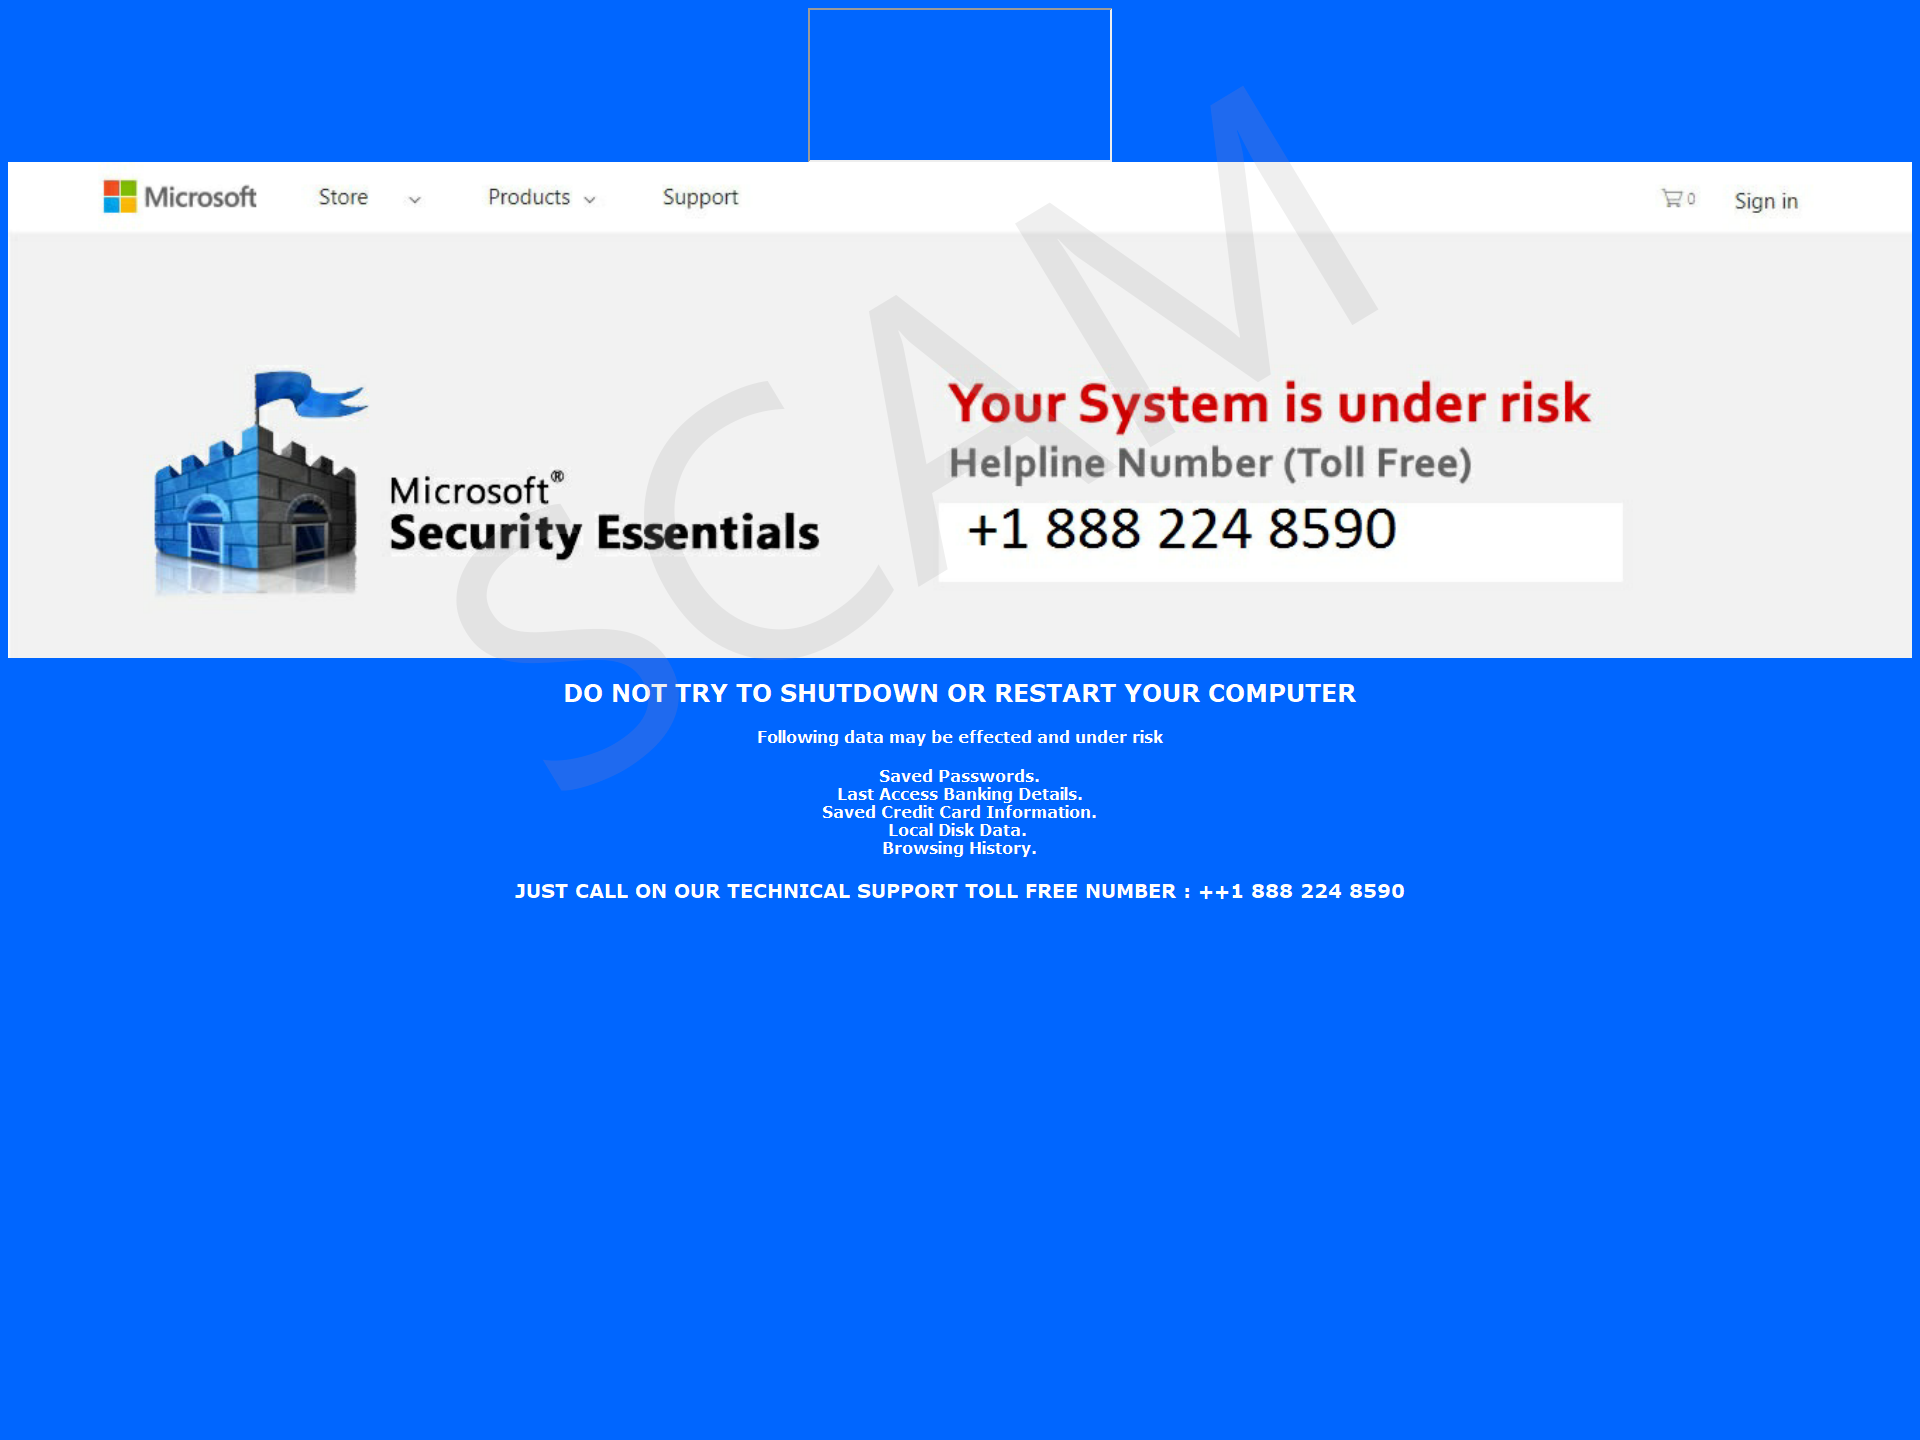 Your System is under risk